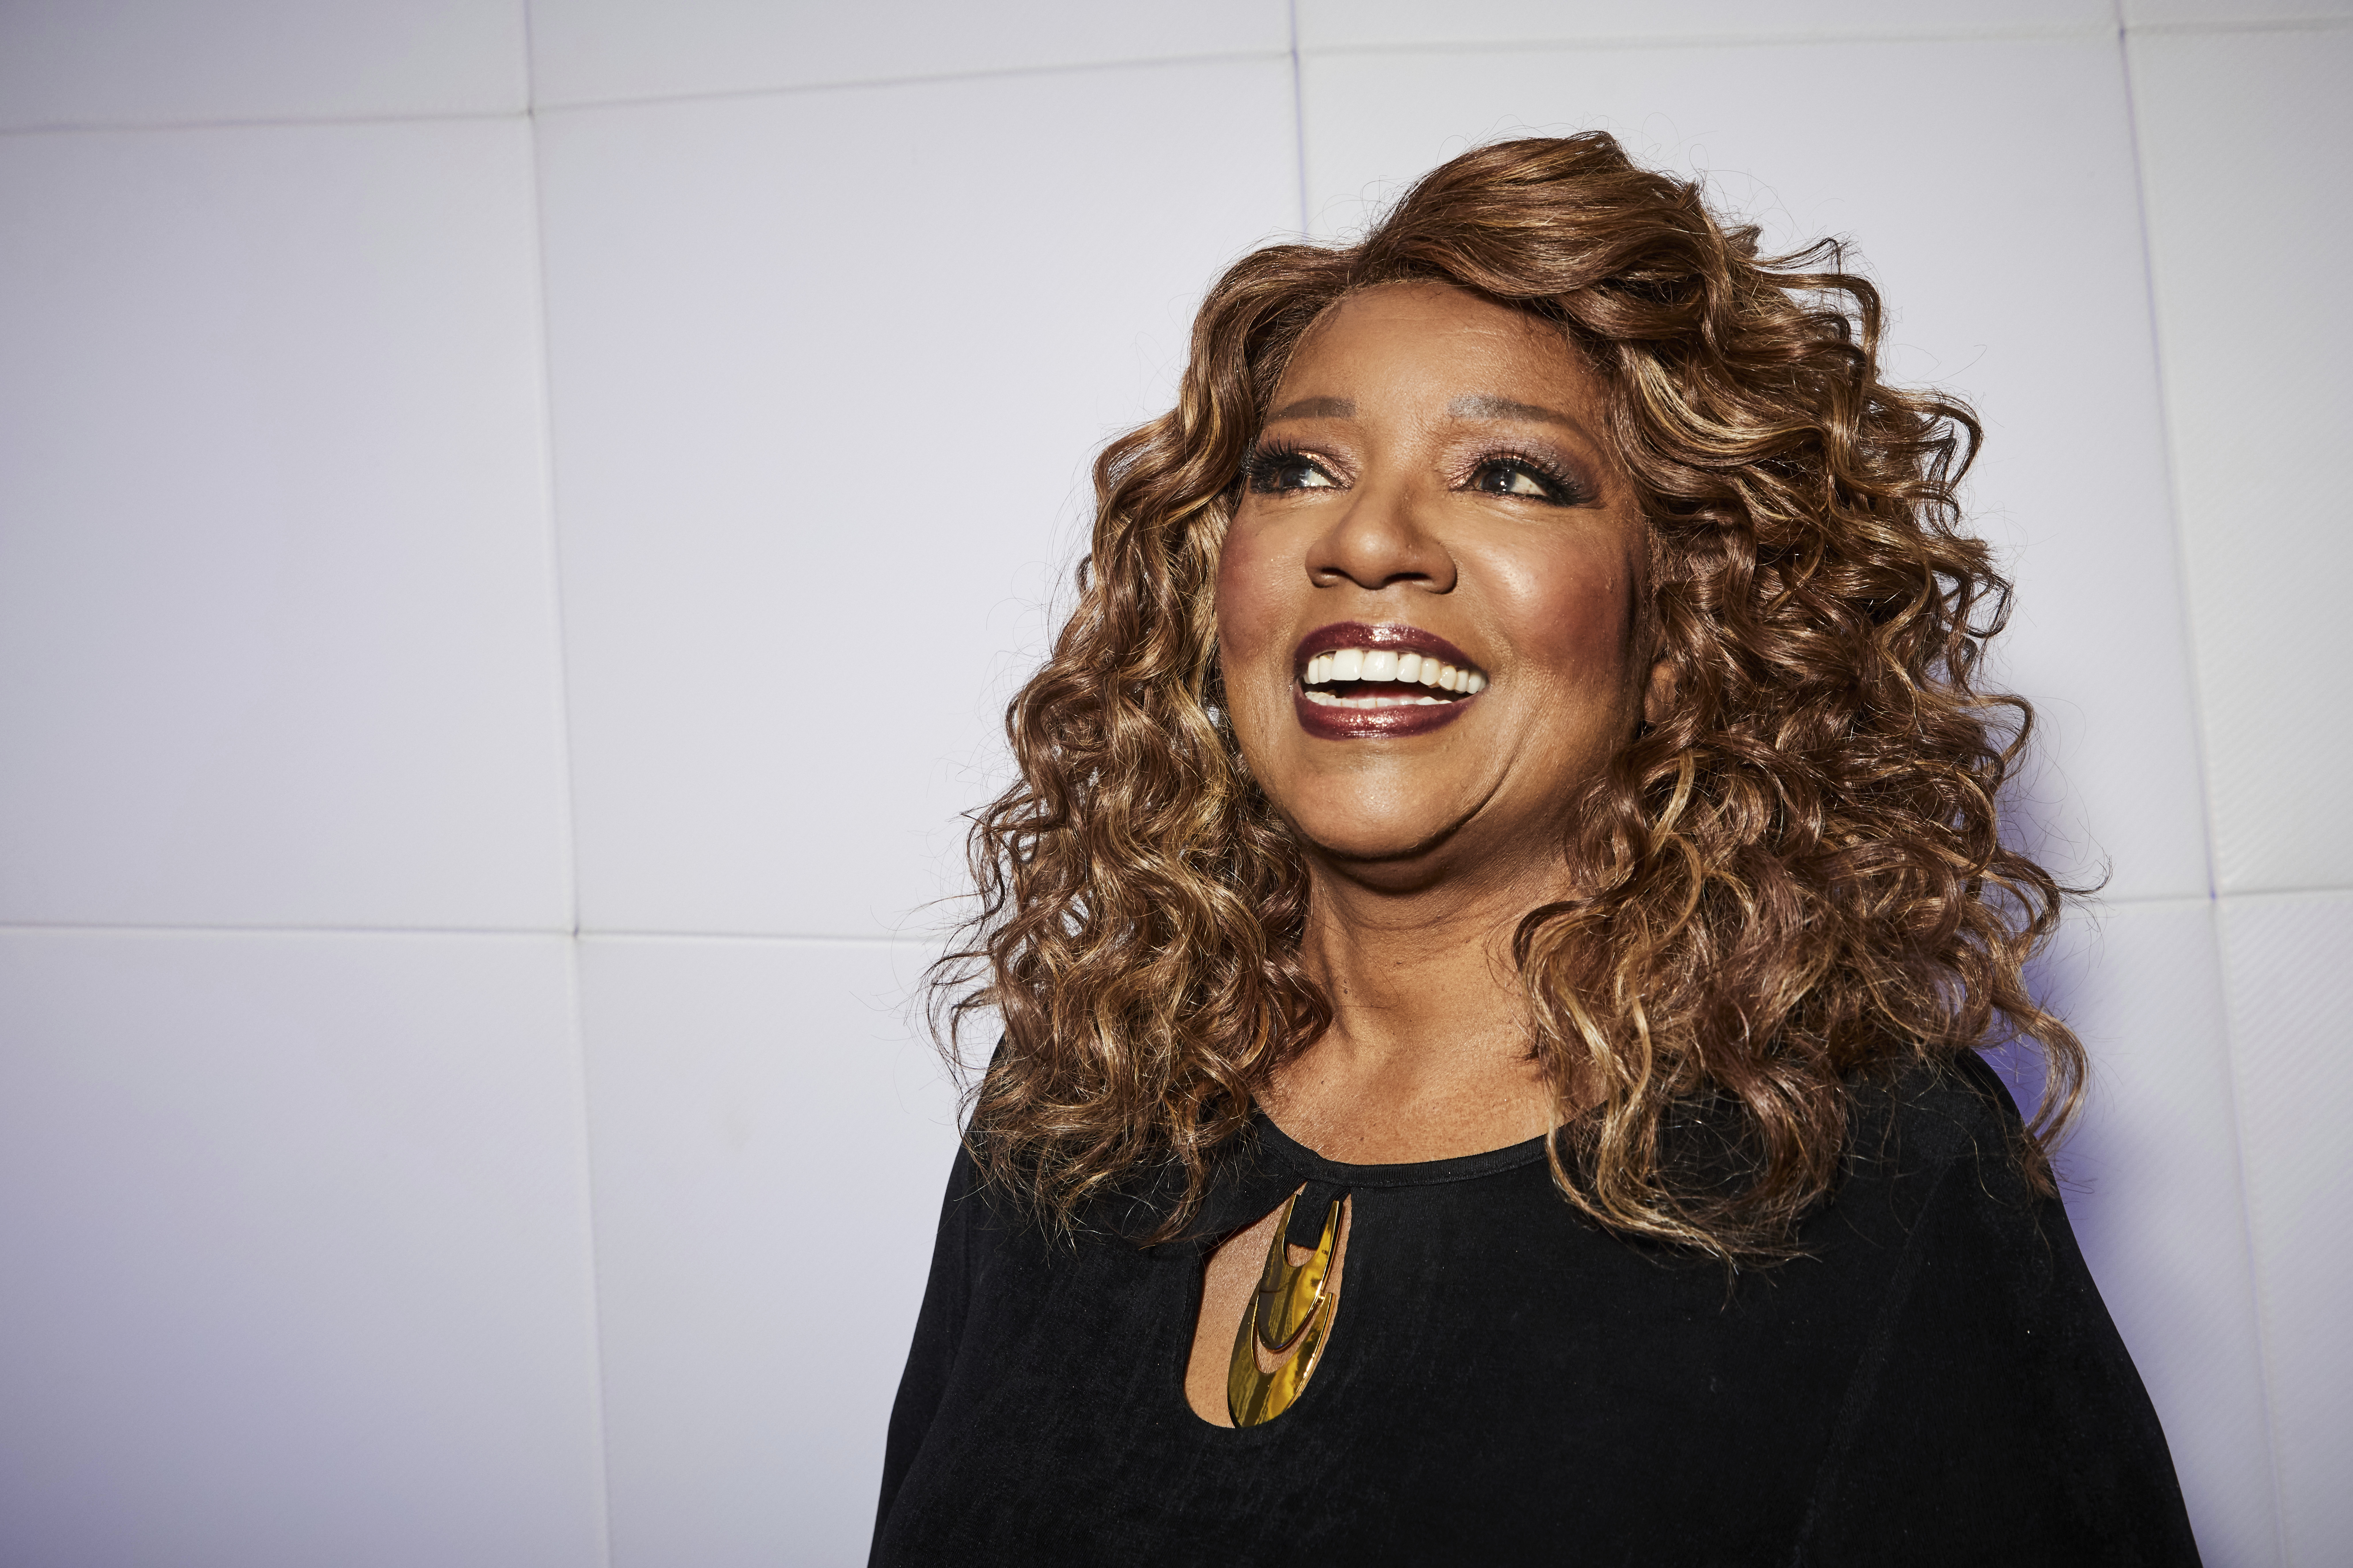 """Gloria Gaynor, who had the iconic disco hit song """"I Will Survive"""" in 1980, is nominated for Grammy Awards for best roots gospel album for """"Testimony"""" and best gospel performance for """"Talking About Jesus."""""""